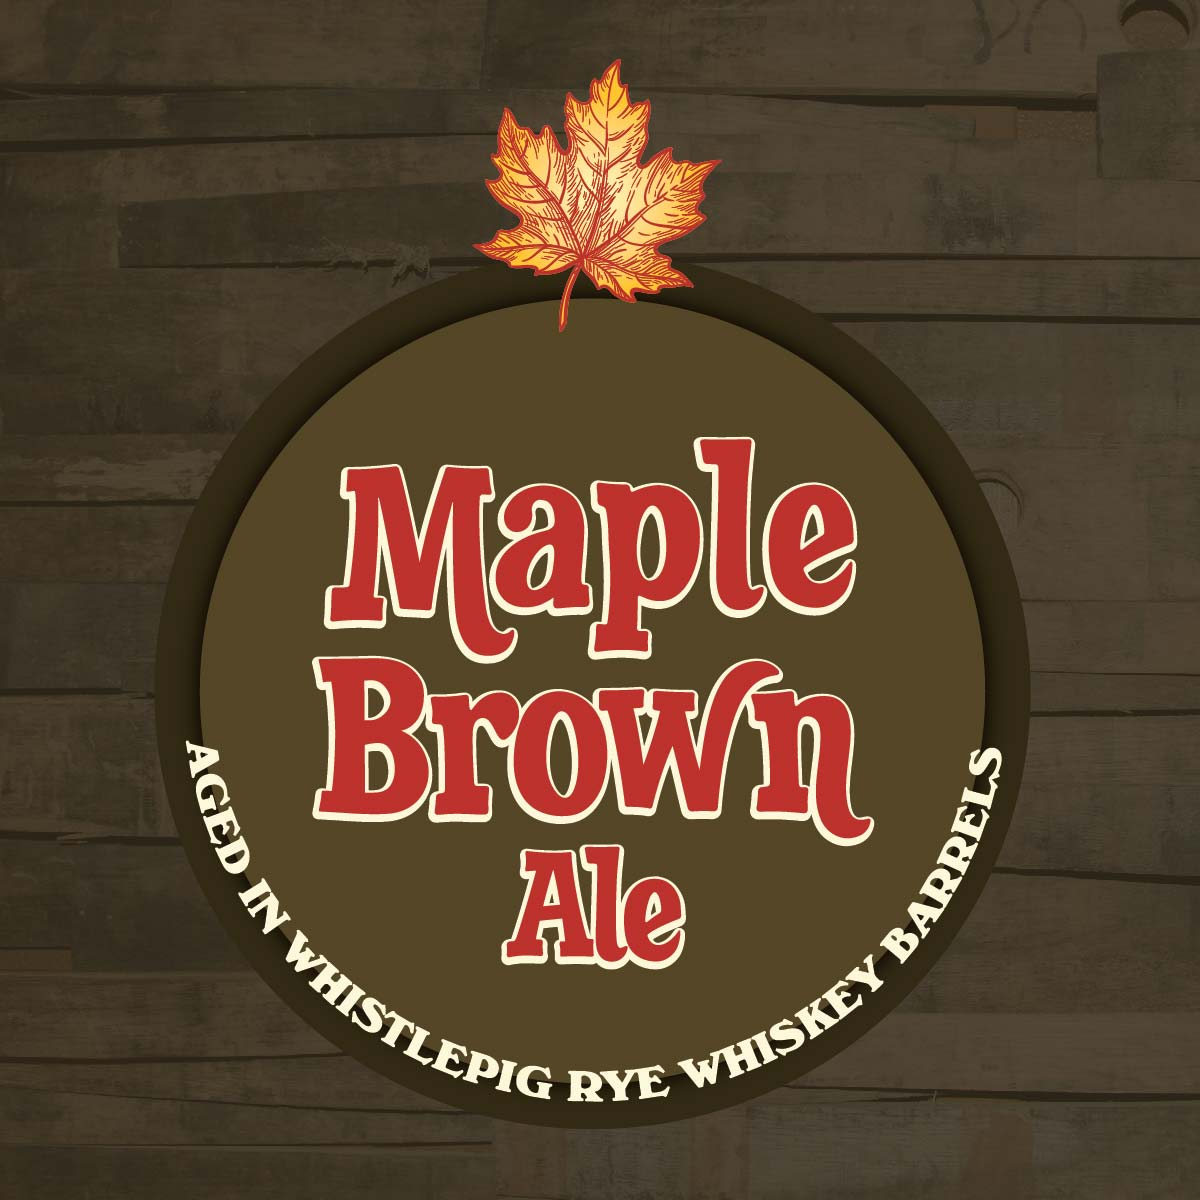 Maple Brown Ale Aged in WhistlePig Rye Whiskey Barrels